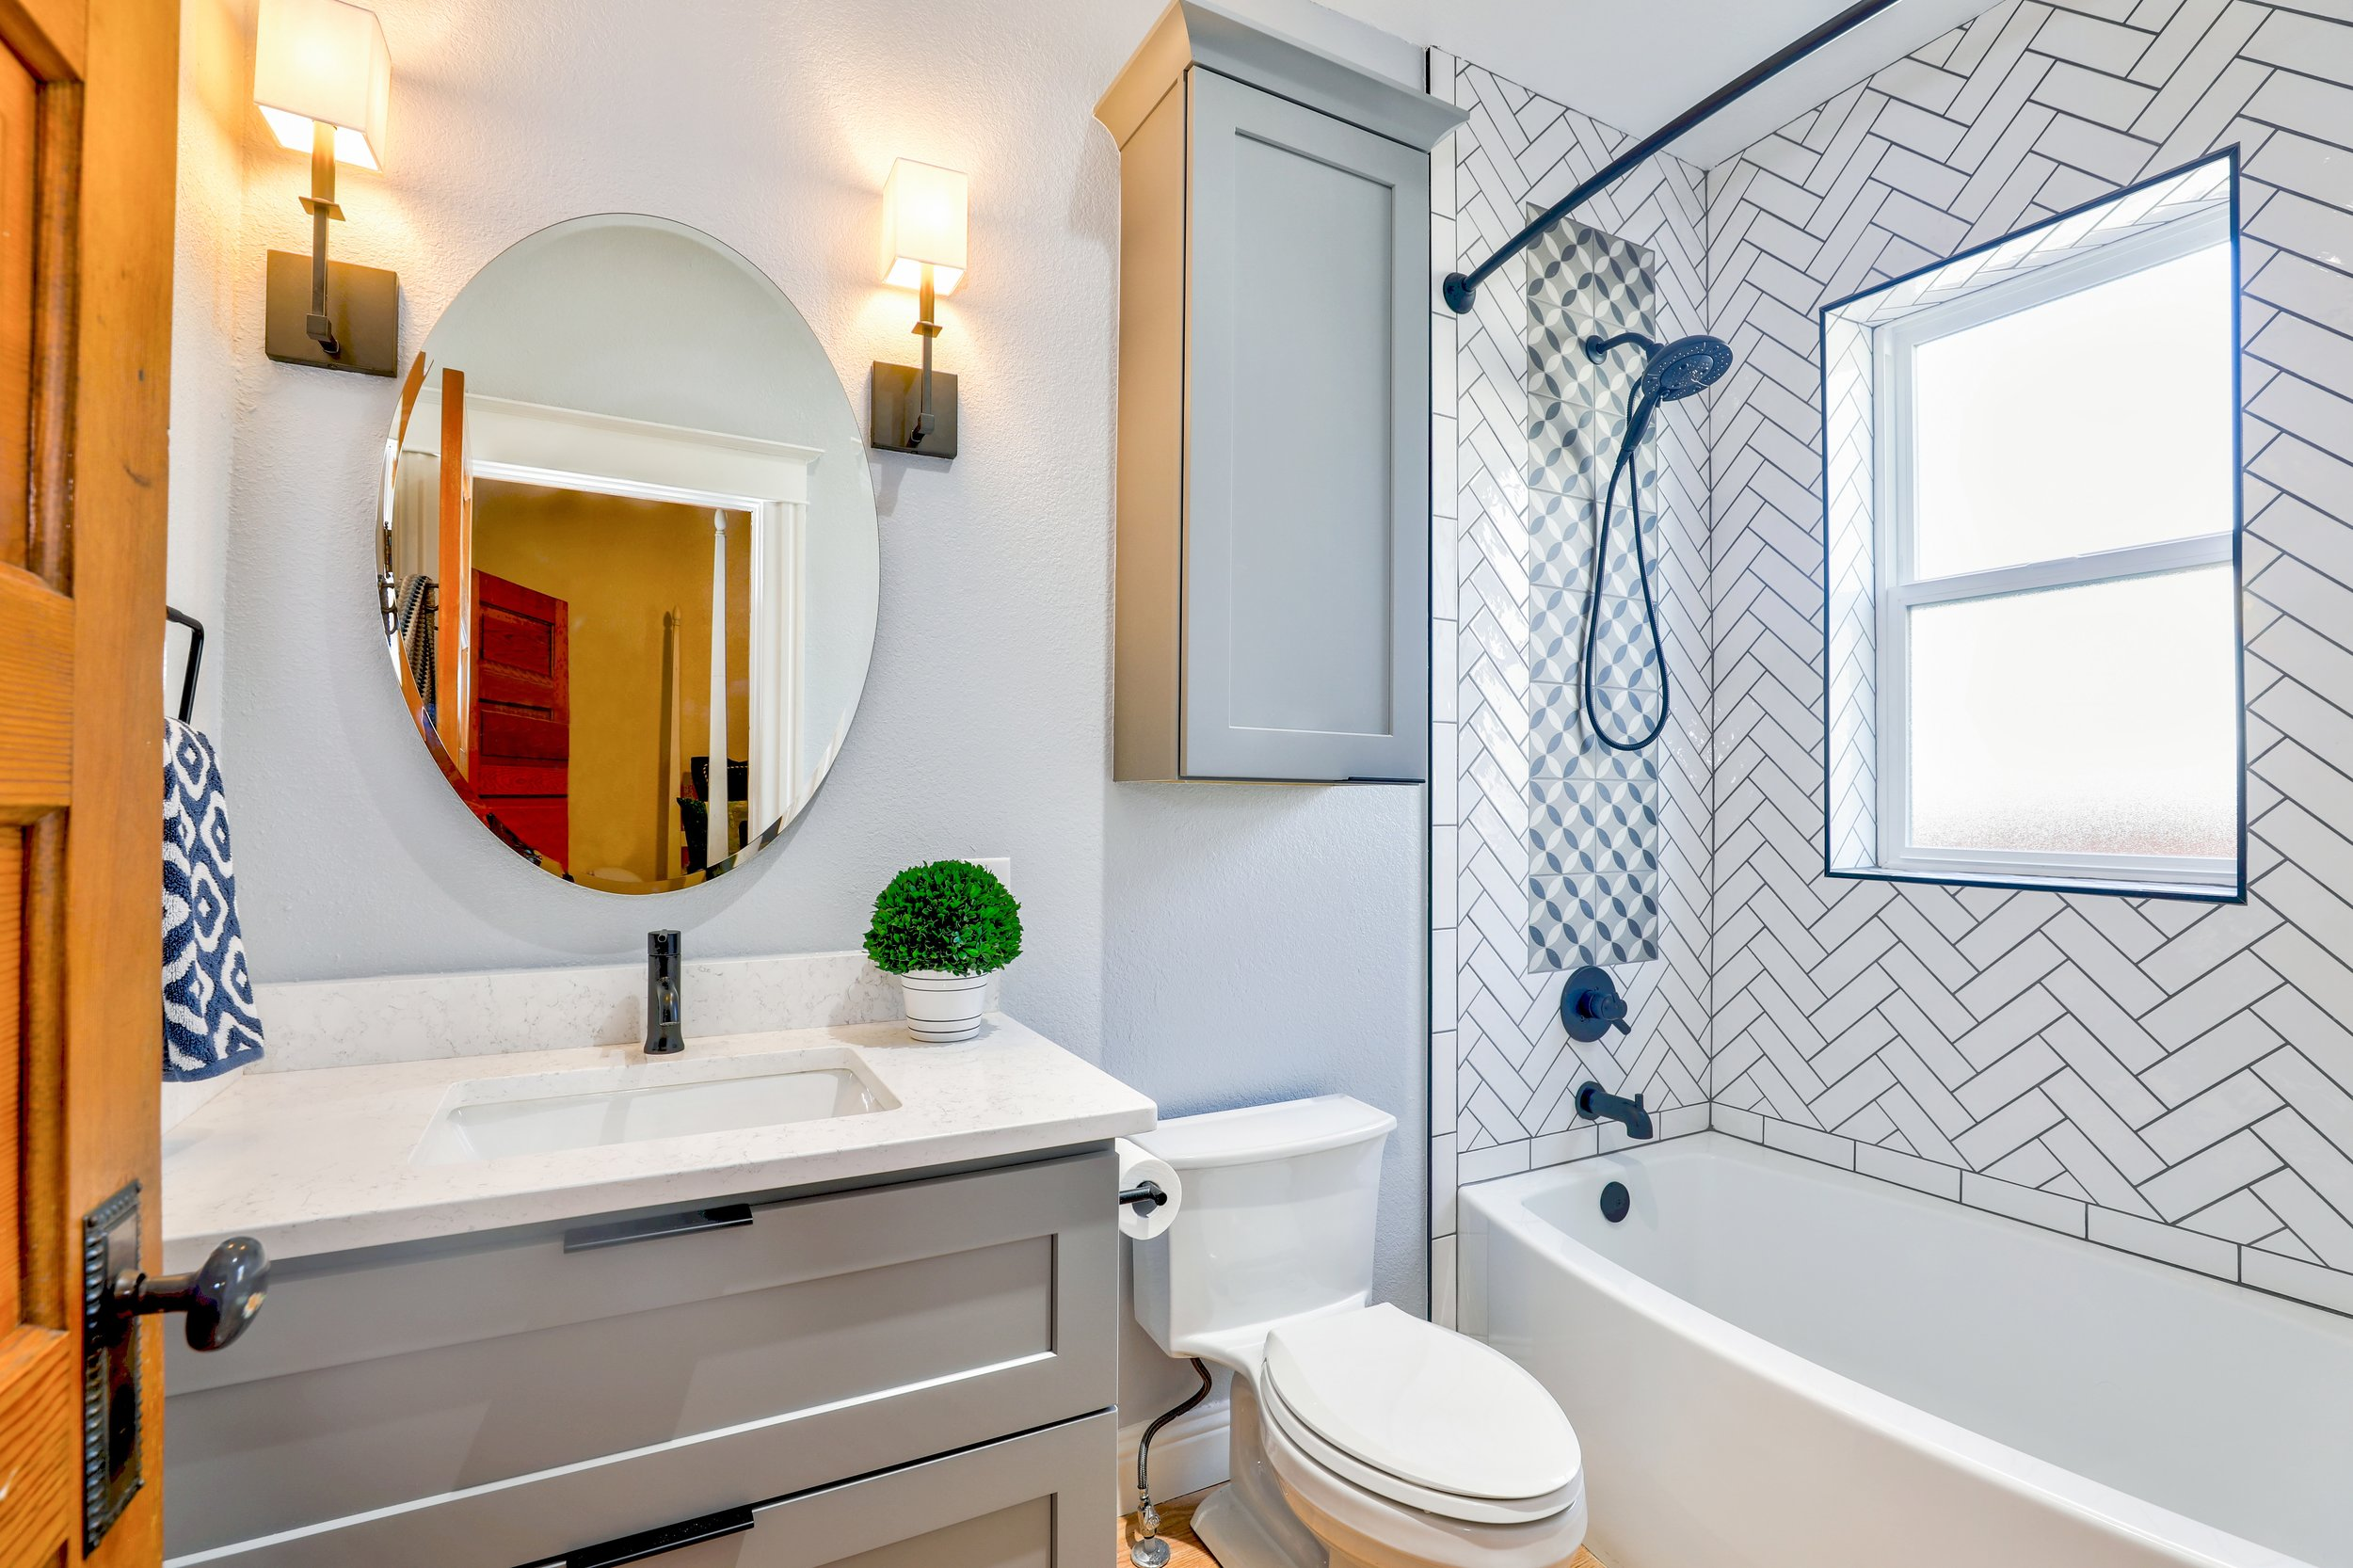 architecture-bathroom-bathtub-1910472.jpg